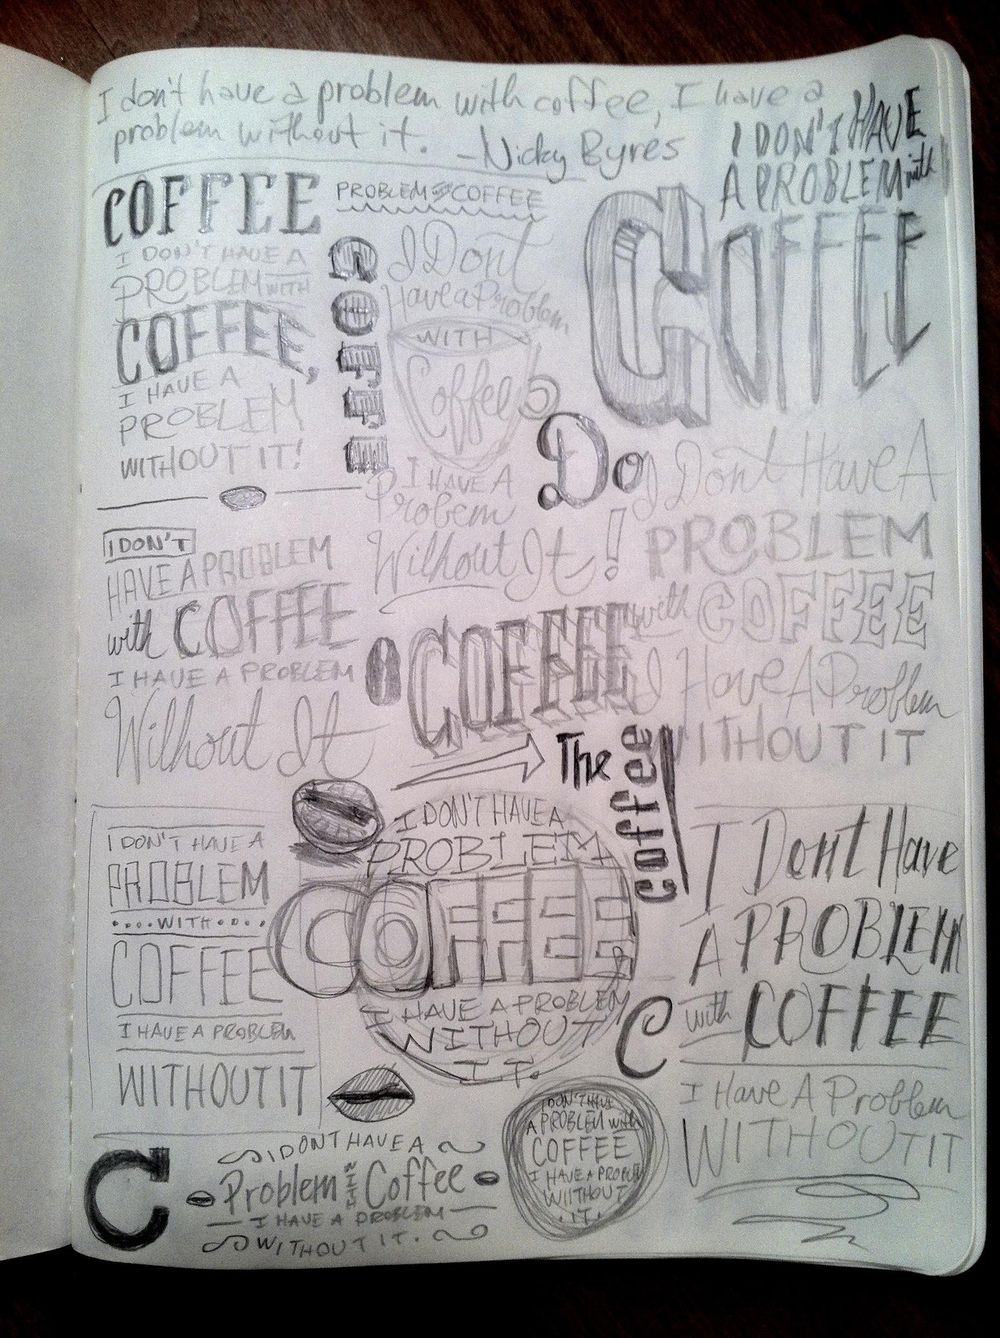 I Don't Have A Problem With Coffee, I Have One Without It - image 7 - student project